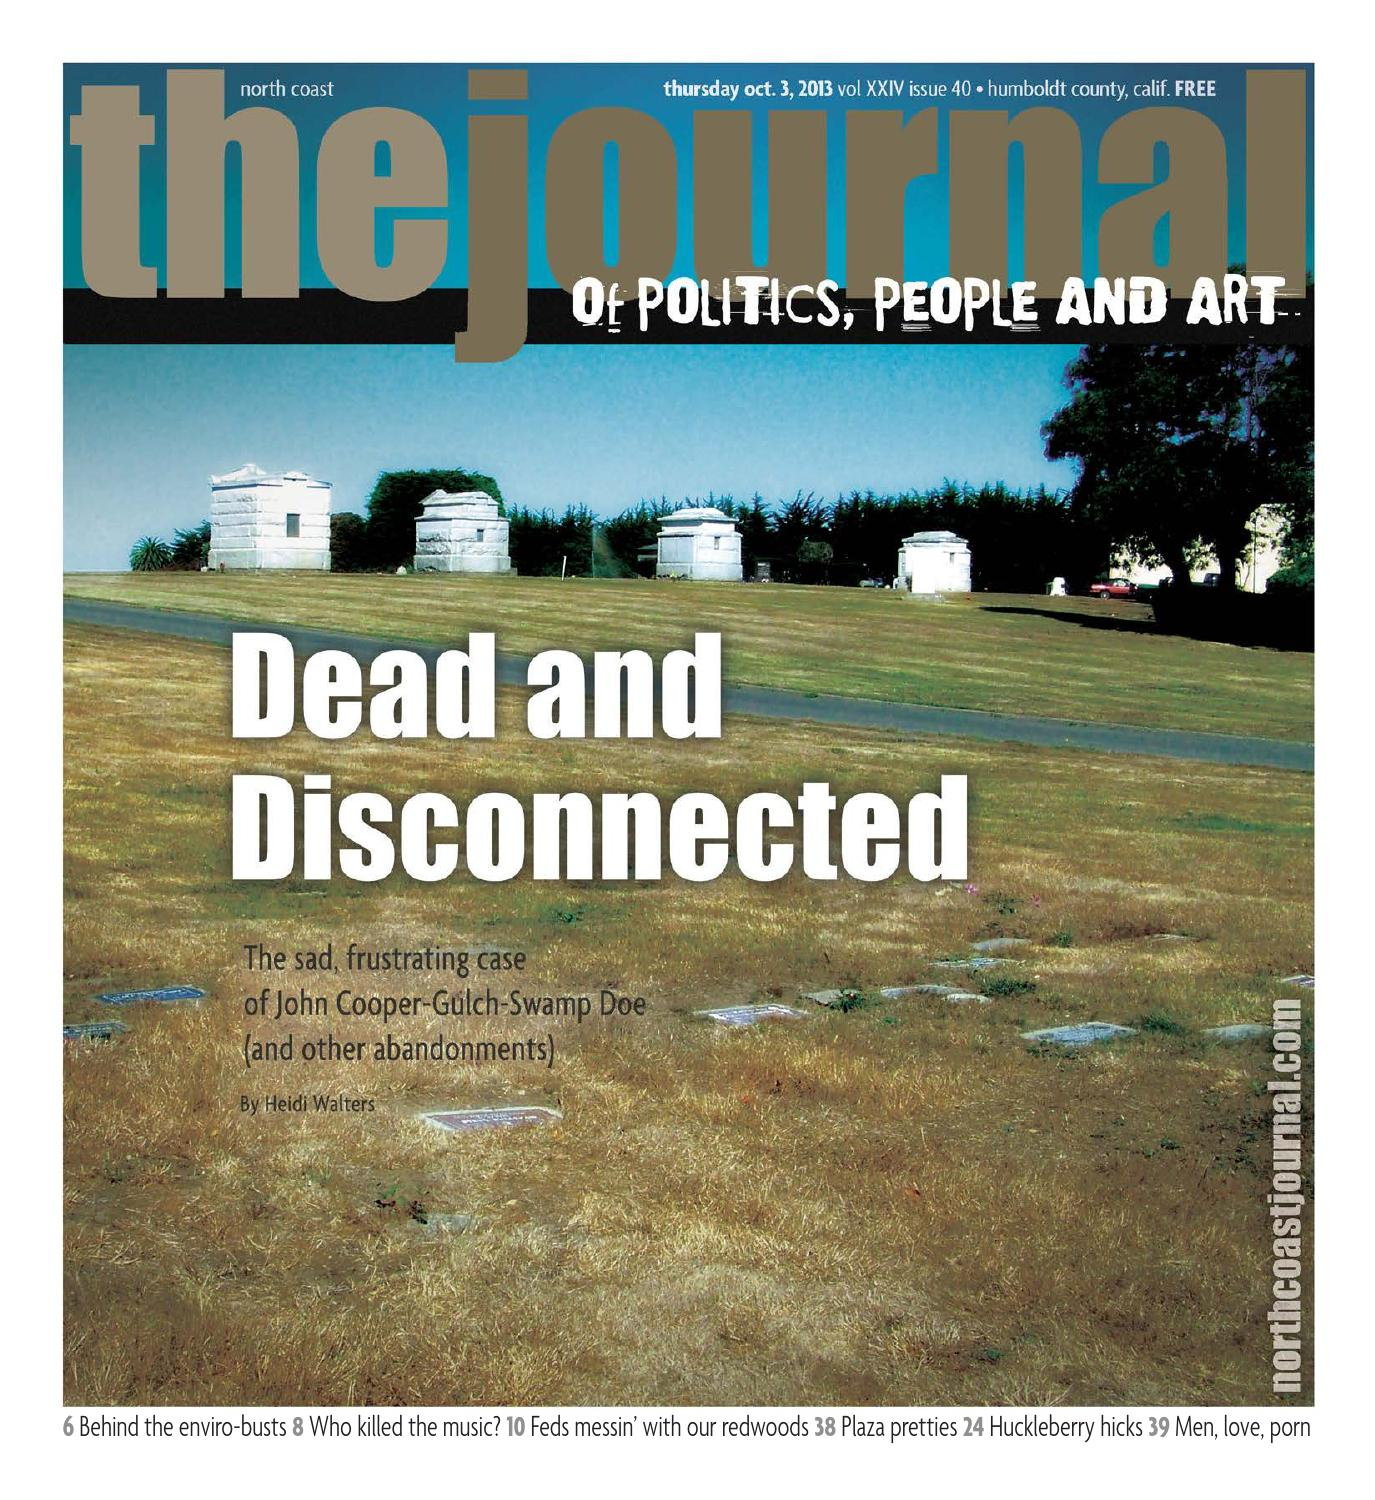 North Coast Journal 10-3-13 Edition on